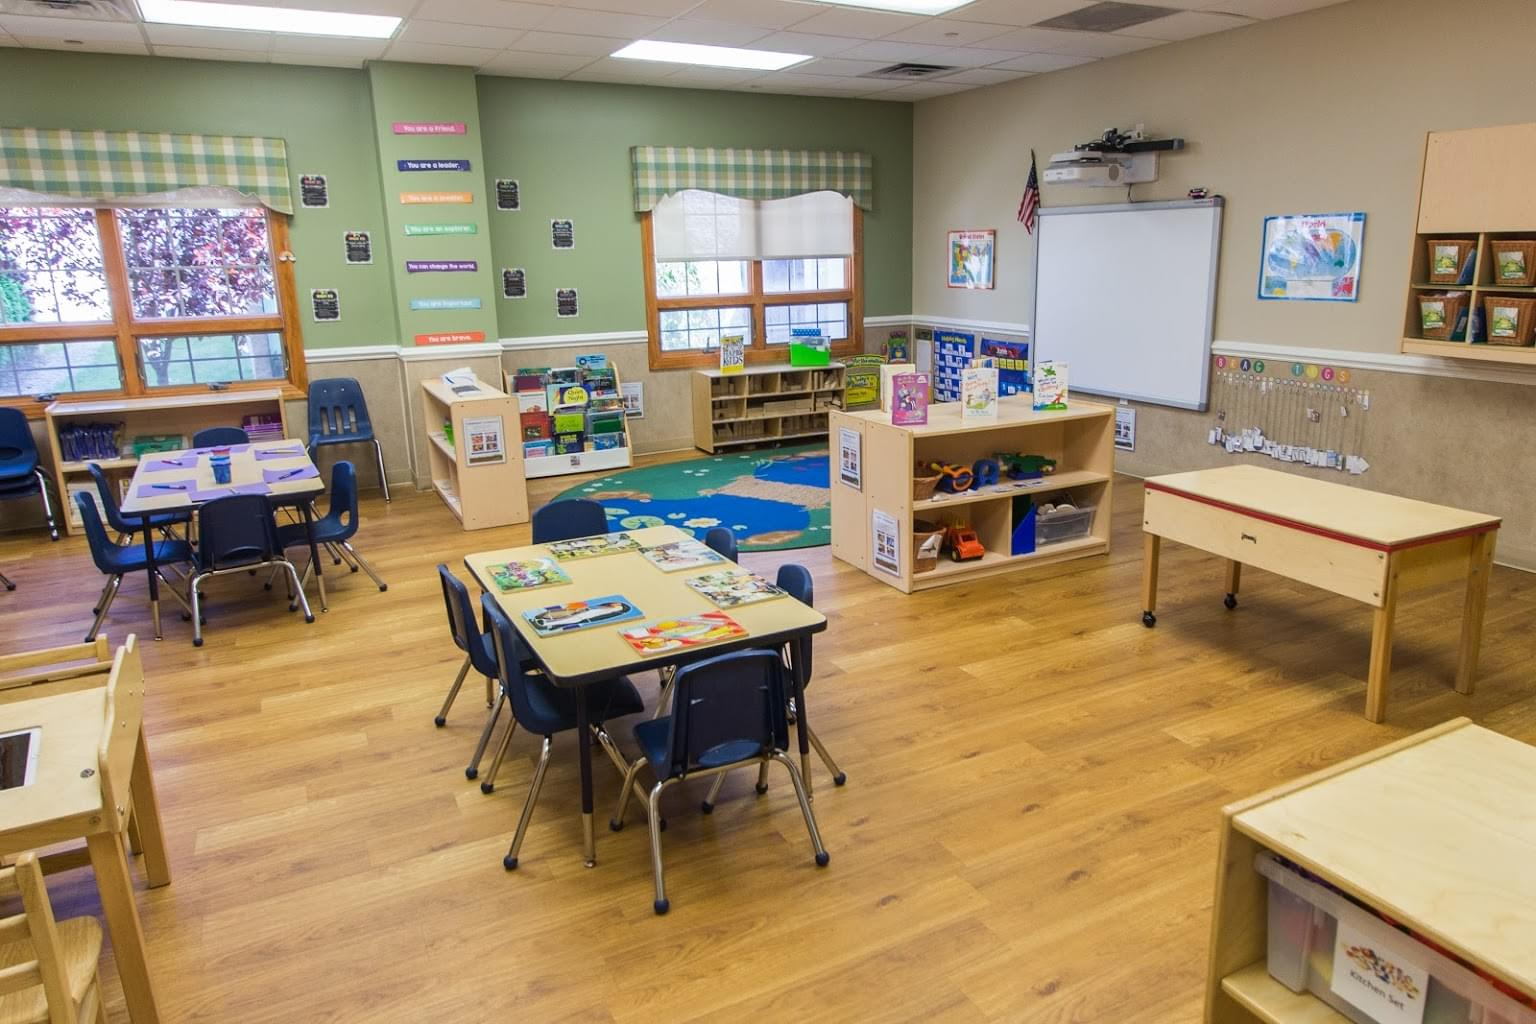 Lightbridge Academy pre-school and daycare in Westwood, NJ